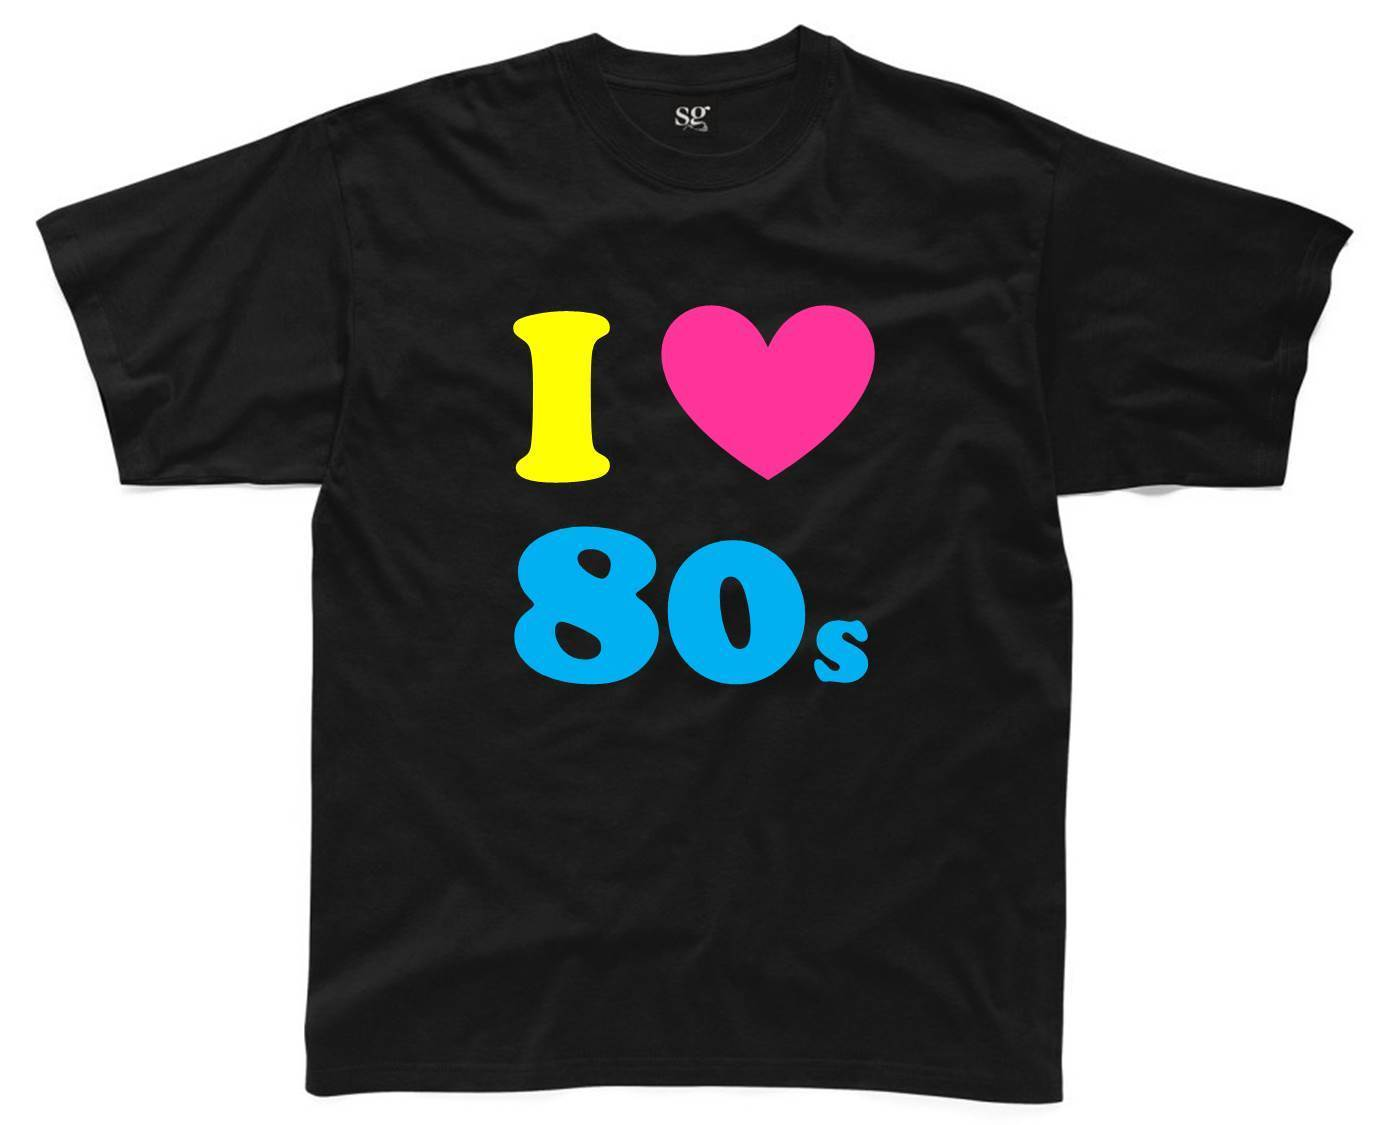 I LOVE THE 80s Mens T-Shirt S-3XL Black Outfit Fancy Dress Costume Neon New T Shirts Funny Tops Tee